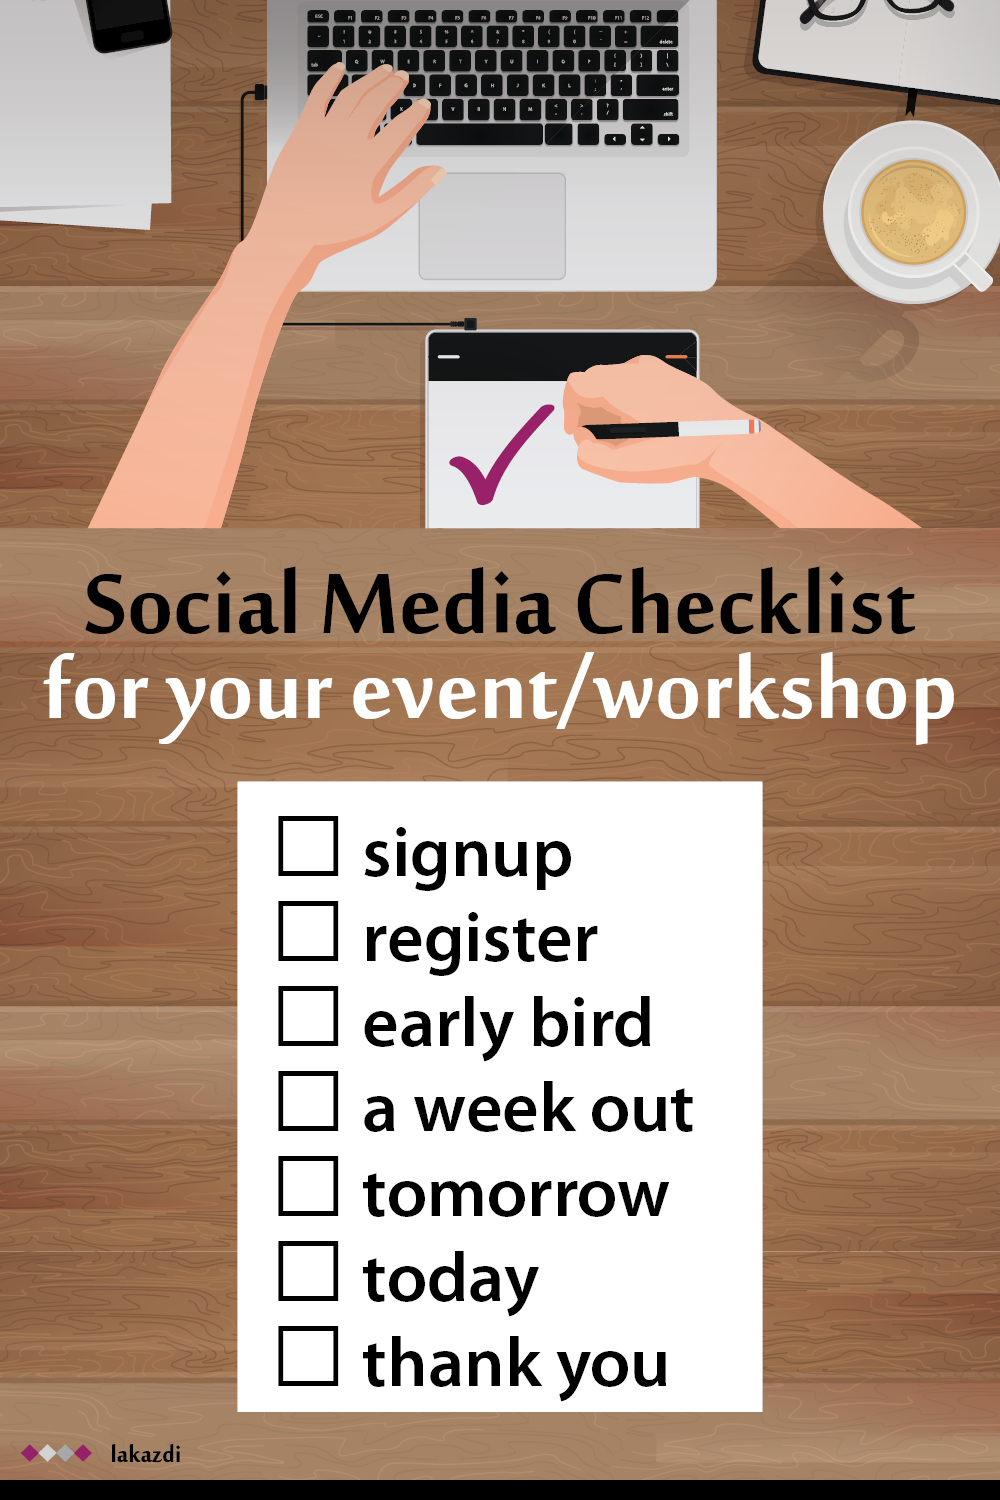 social media posting checklist for running a workshop or holding an event like a booth at a conference, convention, trade show, exhibition